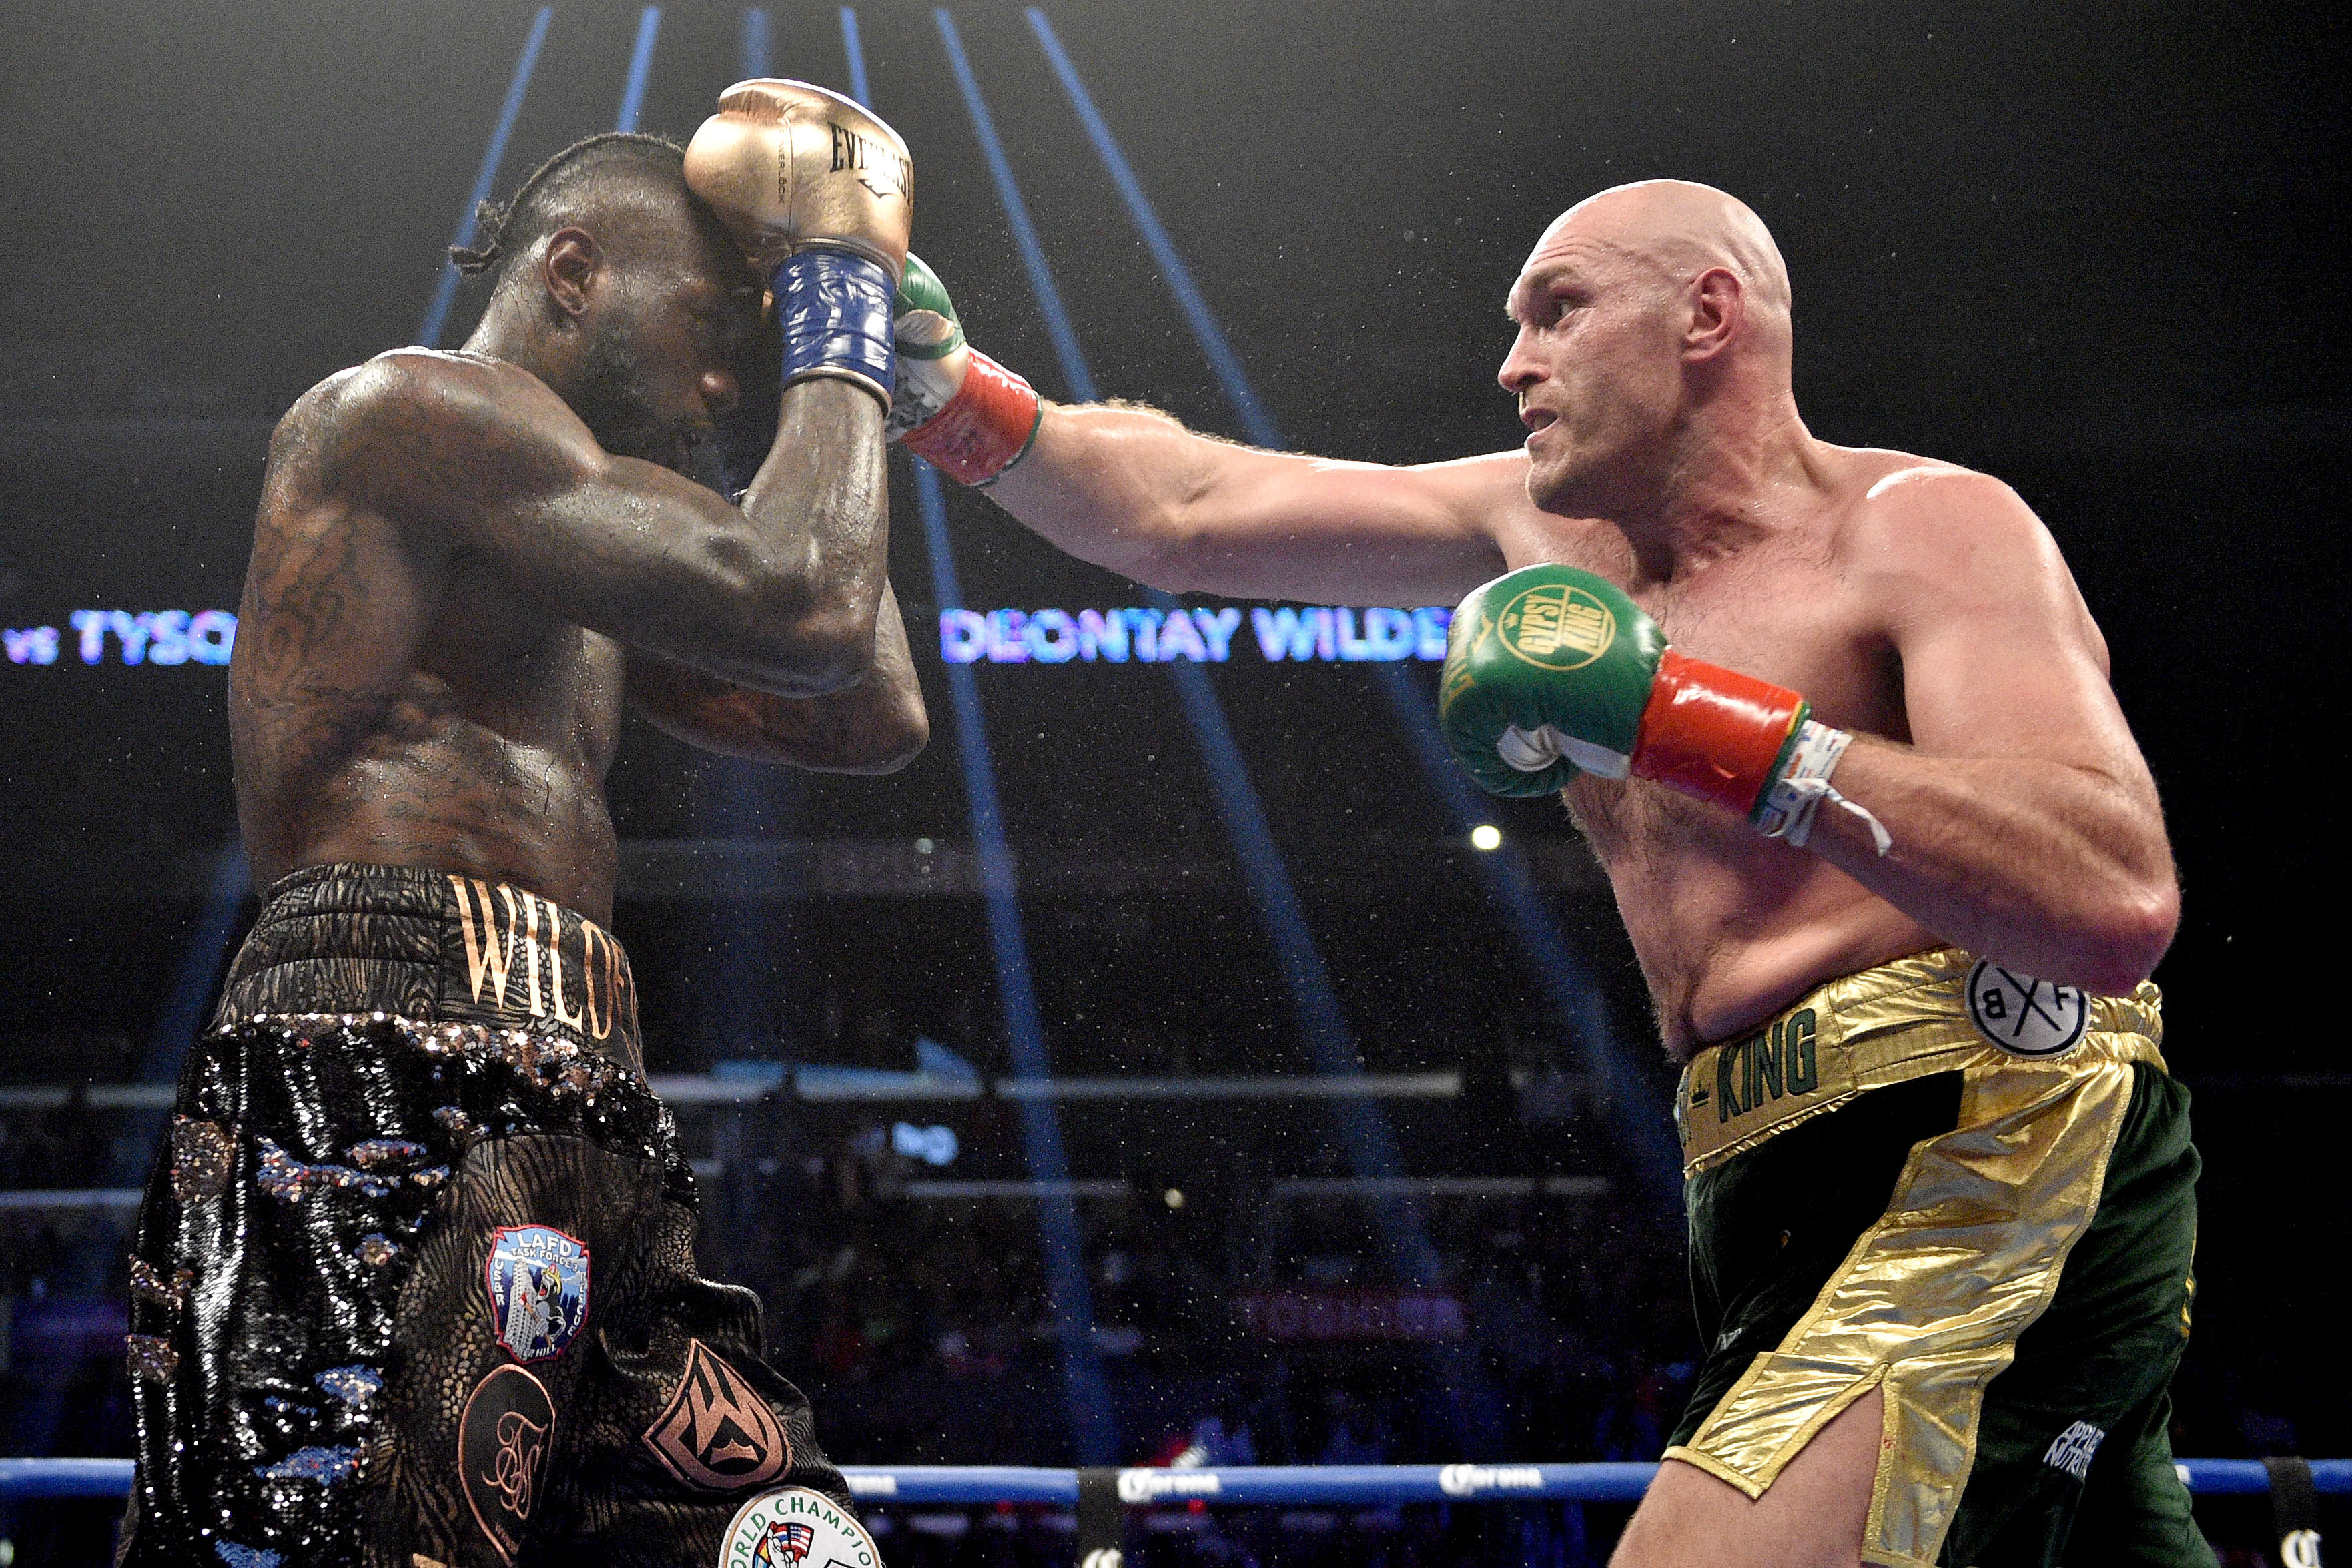 Wilder retains WBC heavyweight belt after battling to draw against Fury